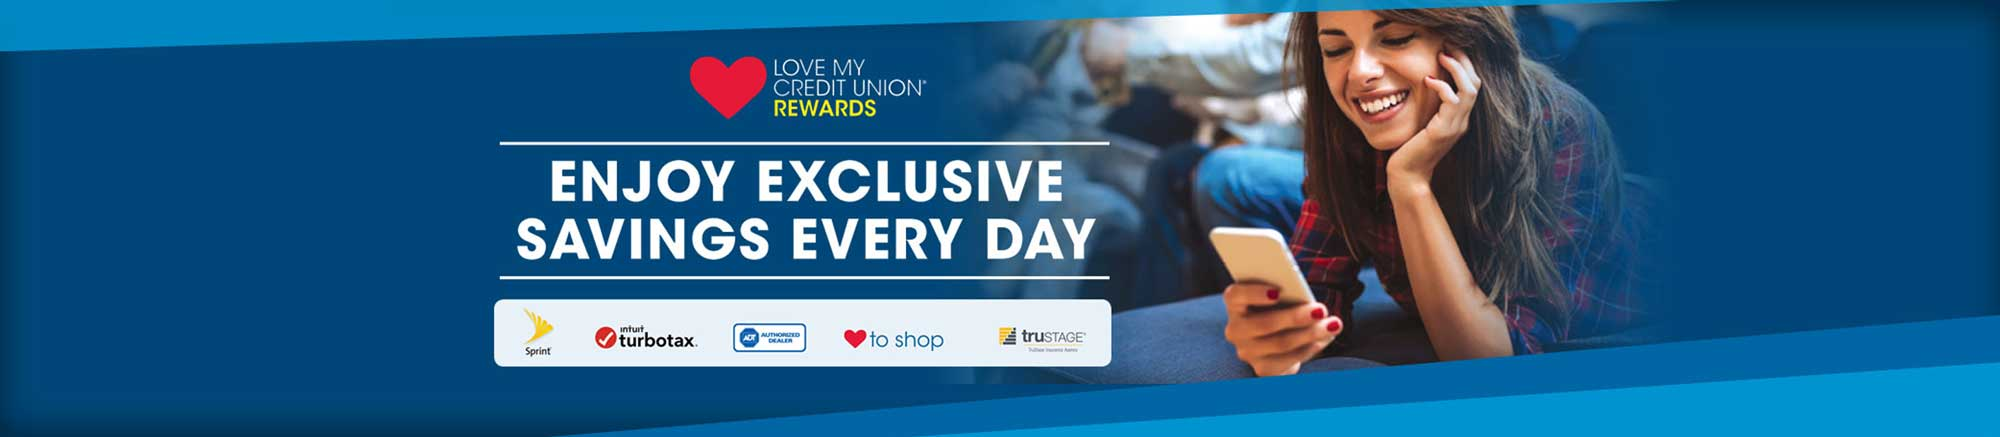 Love my credit union rewards. Enjoy exclusive savings everyday. Sprint. Turbotax. Authorized Dealer. to shop. trustage.